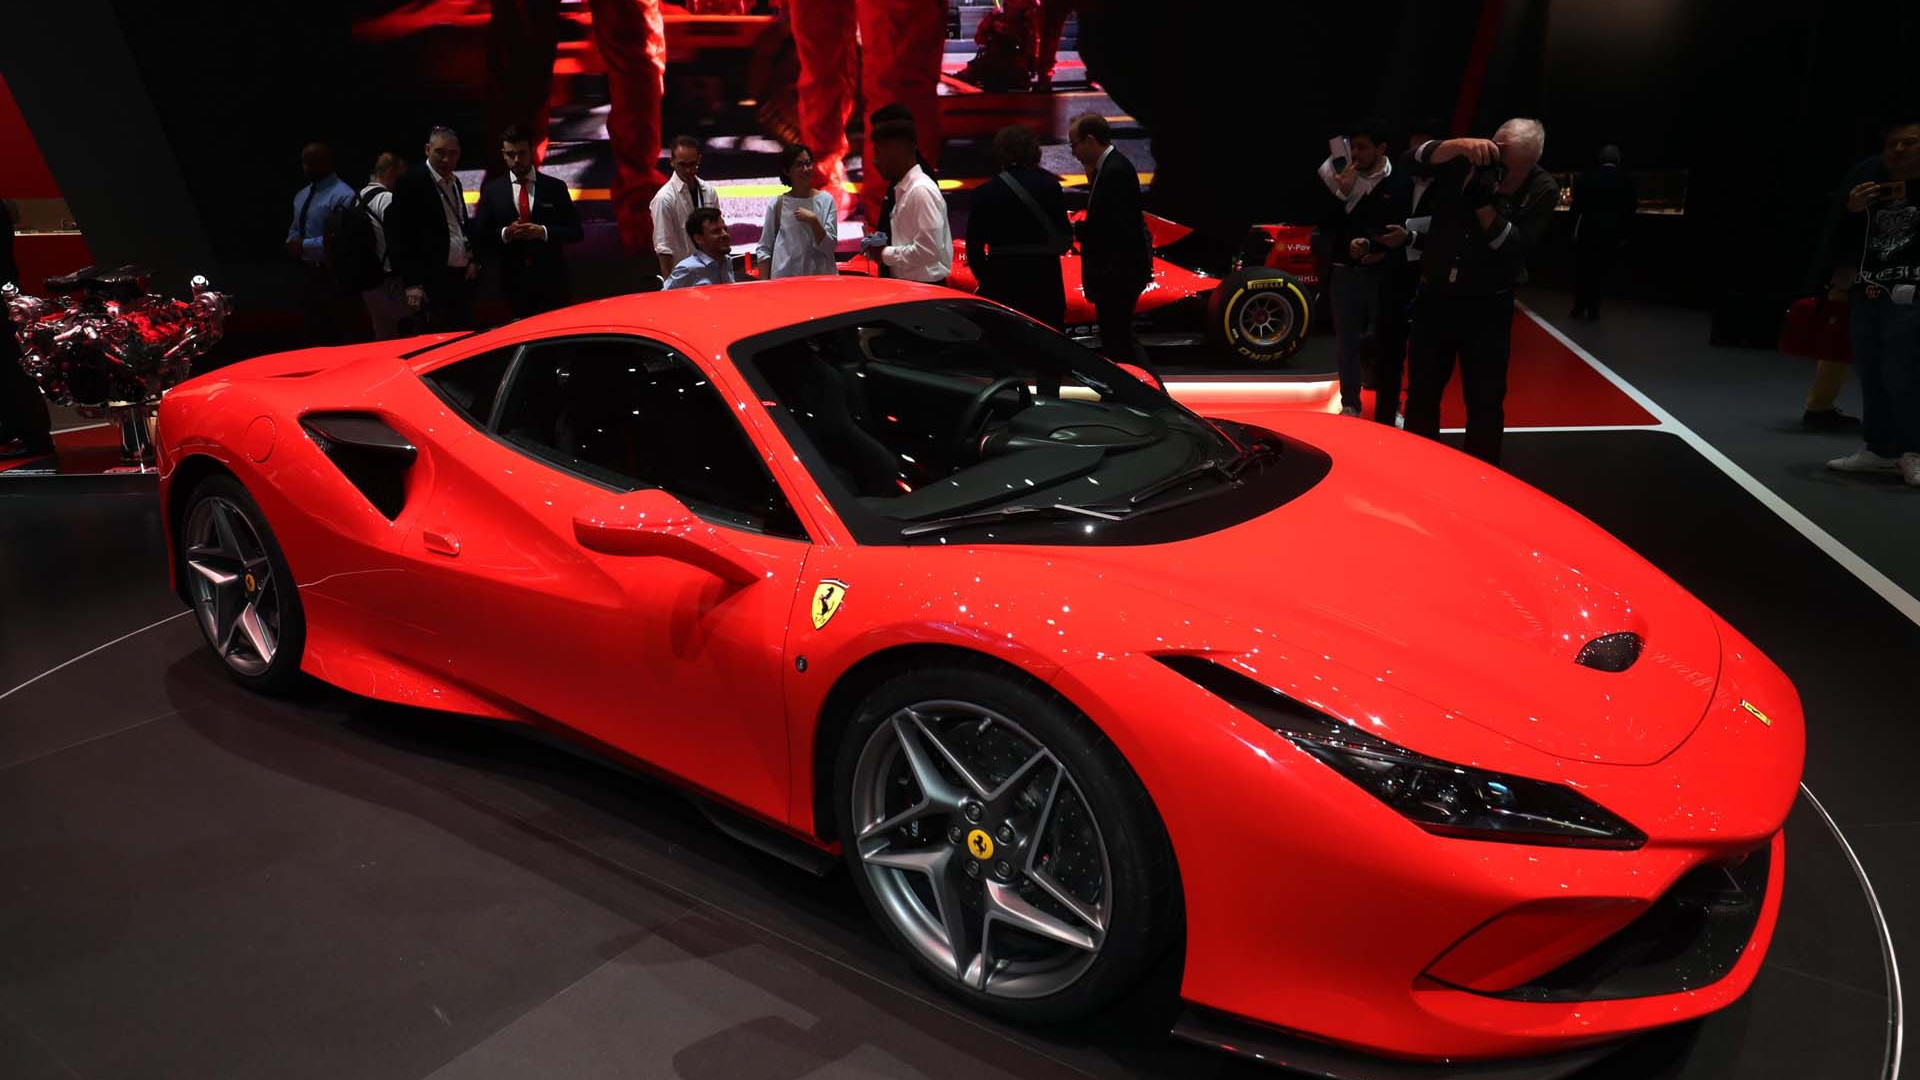 Ferrari 458 Italia Wallpaper Hd 710 Horsepower Ferrari F8 Tributo Arrives To Replace The 488